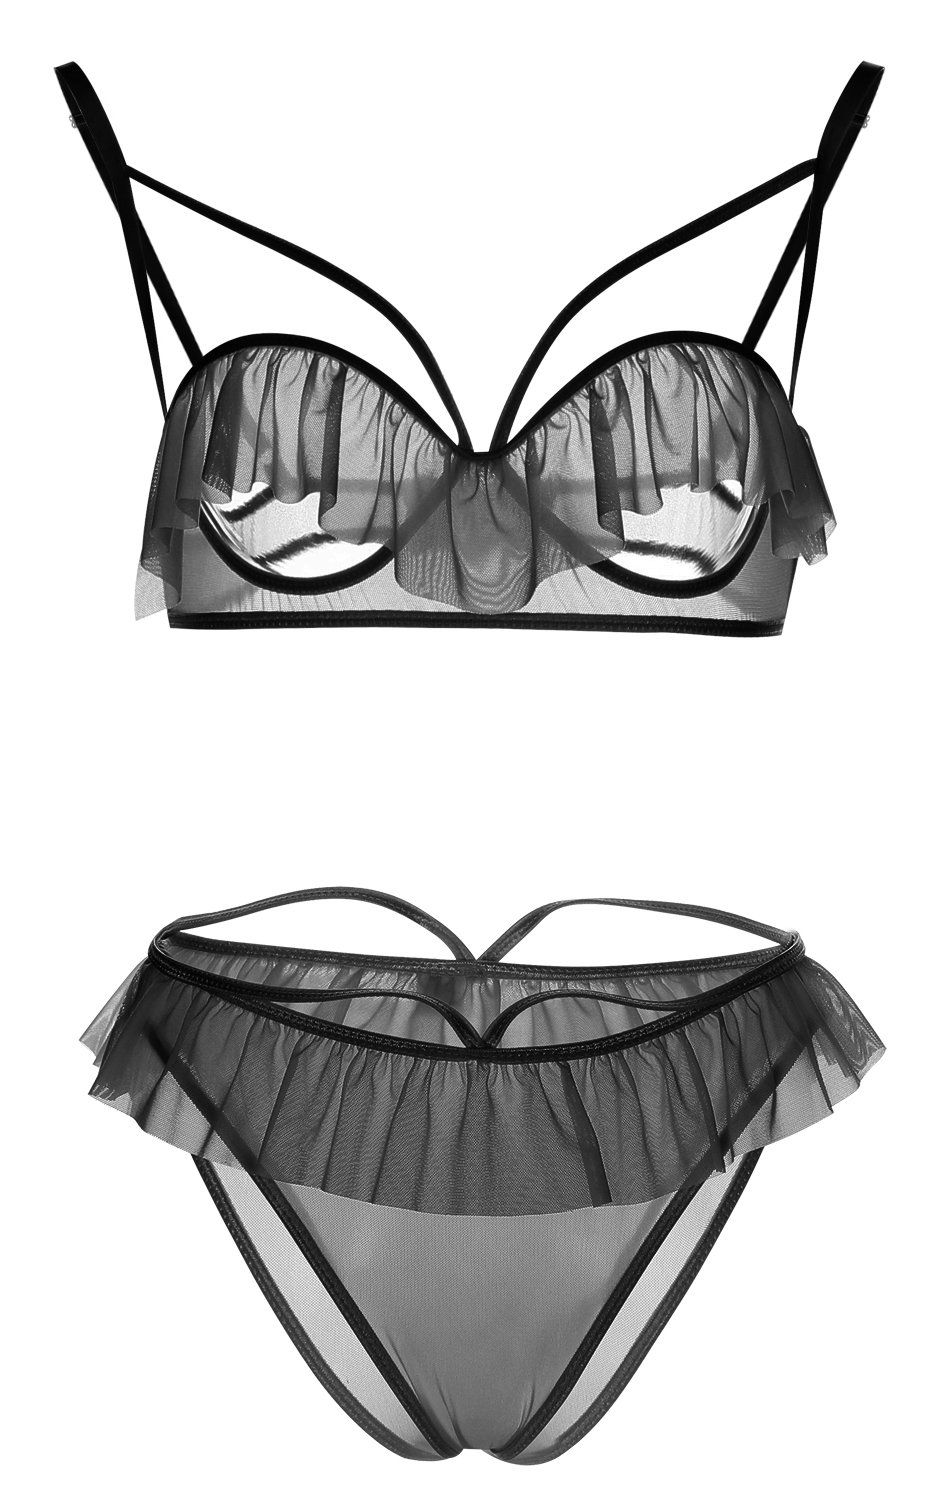 3c602ffca0717 Blidece Women 2 Piece Open Cup Cupless Sexy Lingerie Nightwear Babydoll and  Thong Set Black L. Sexy Babydoll Transparent Open Bra set Plus Size ...